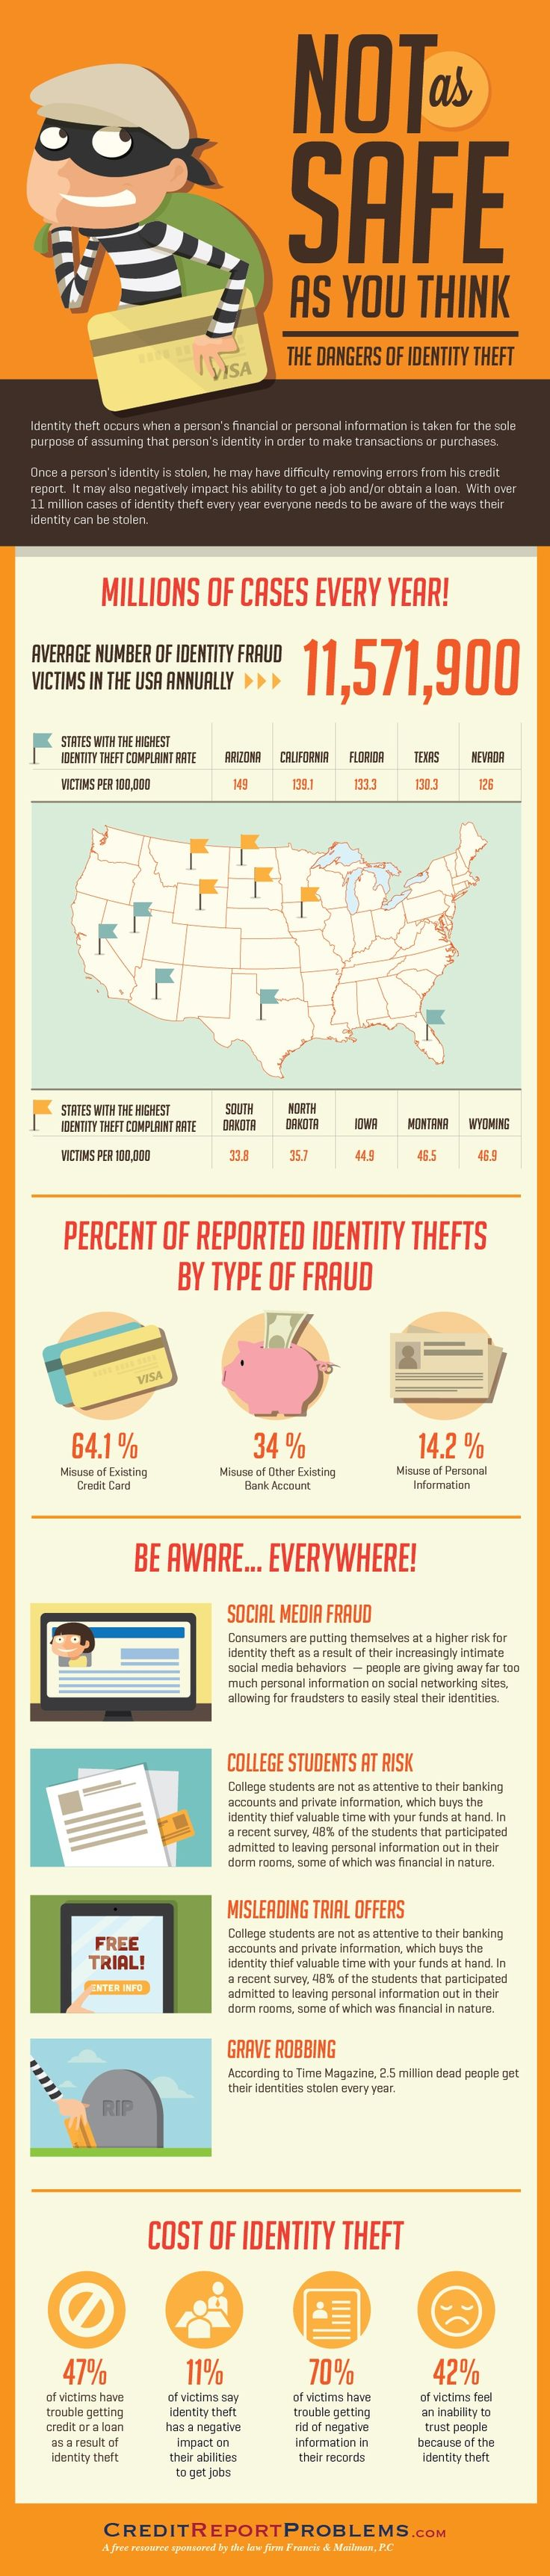 Not As Safe As You Think: The Dangers of Identity Theft | New Visions Healthcare Blog - www.healthcoverageally.com